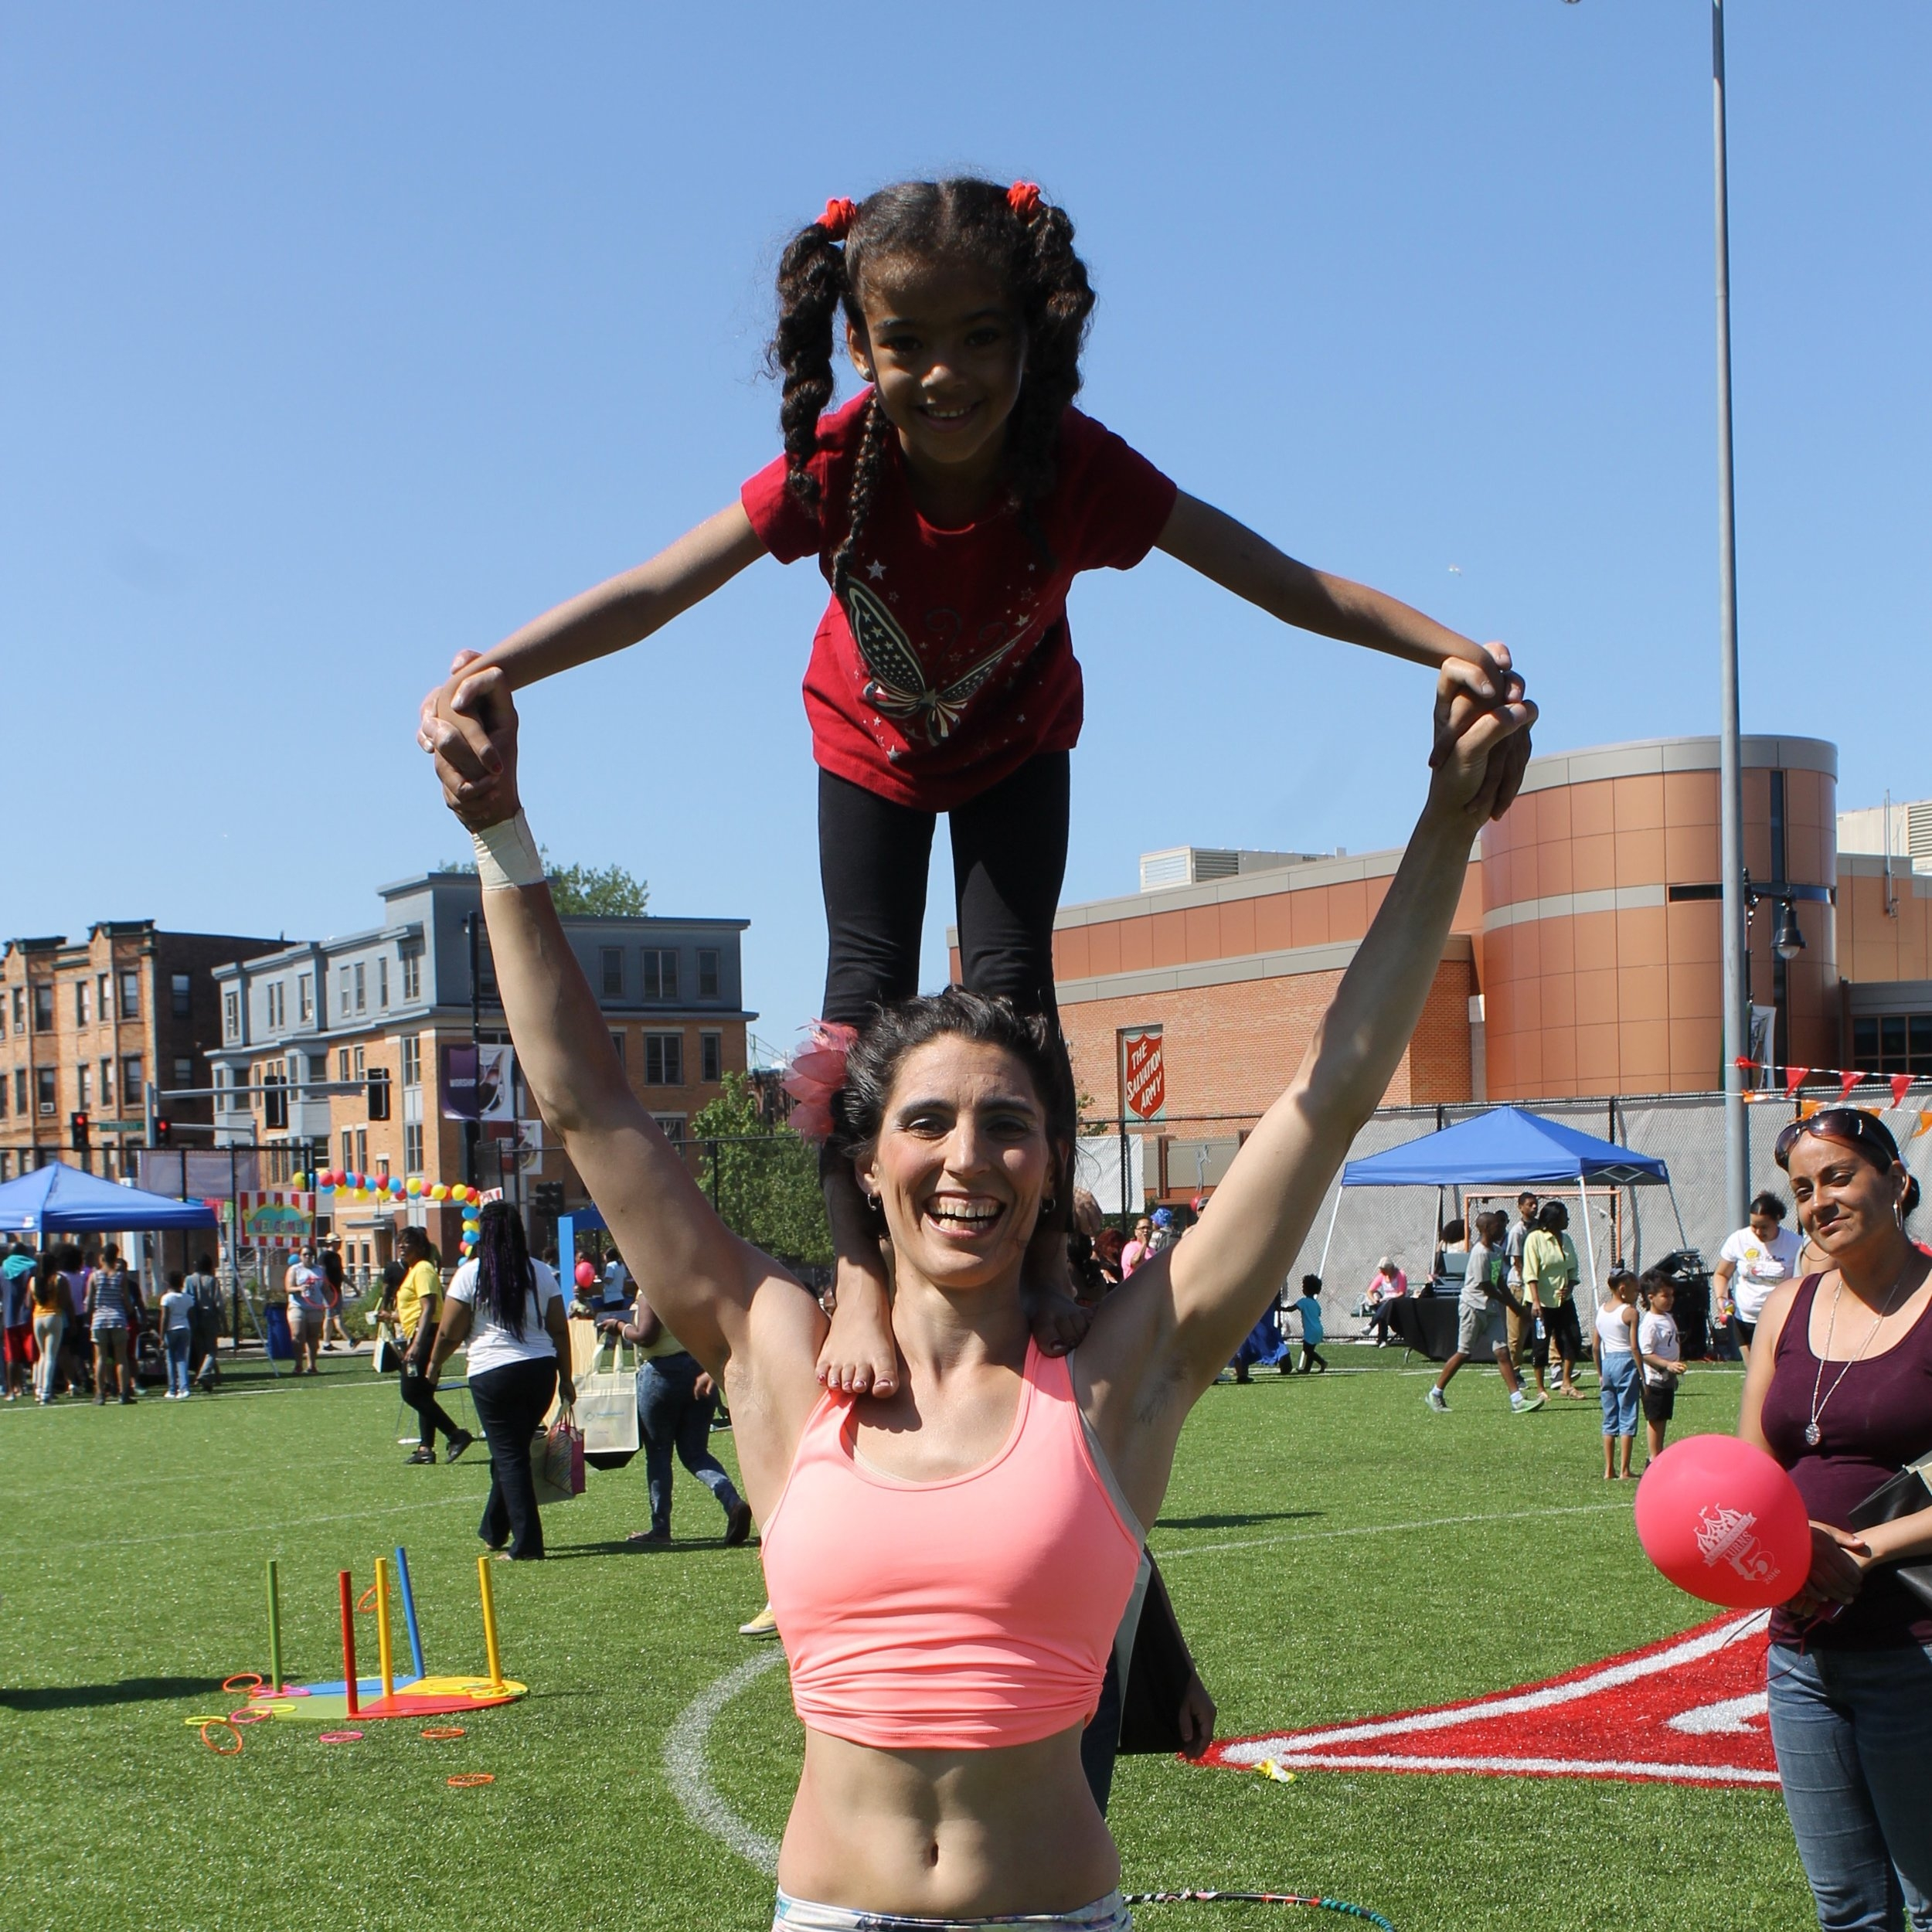 Circus Up Founder and Executive Director Leah Abel doing partner acrobatics at the Kroc in Dorchester.